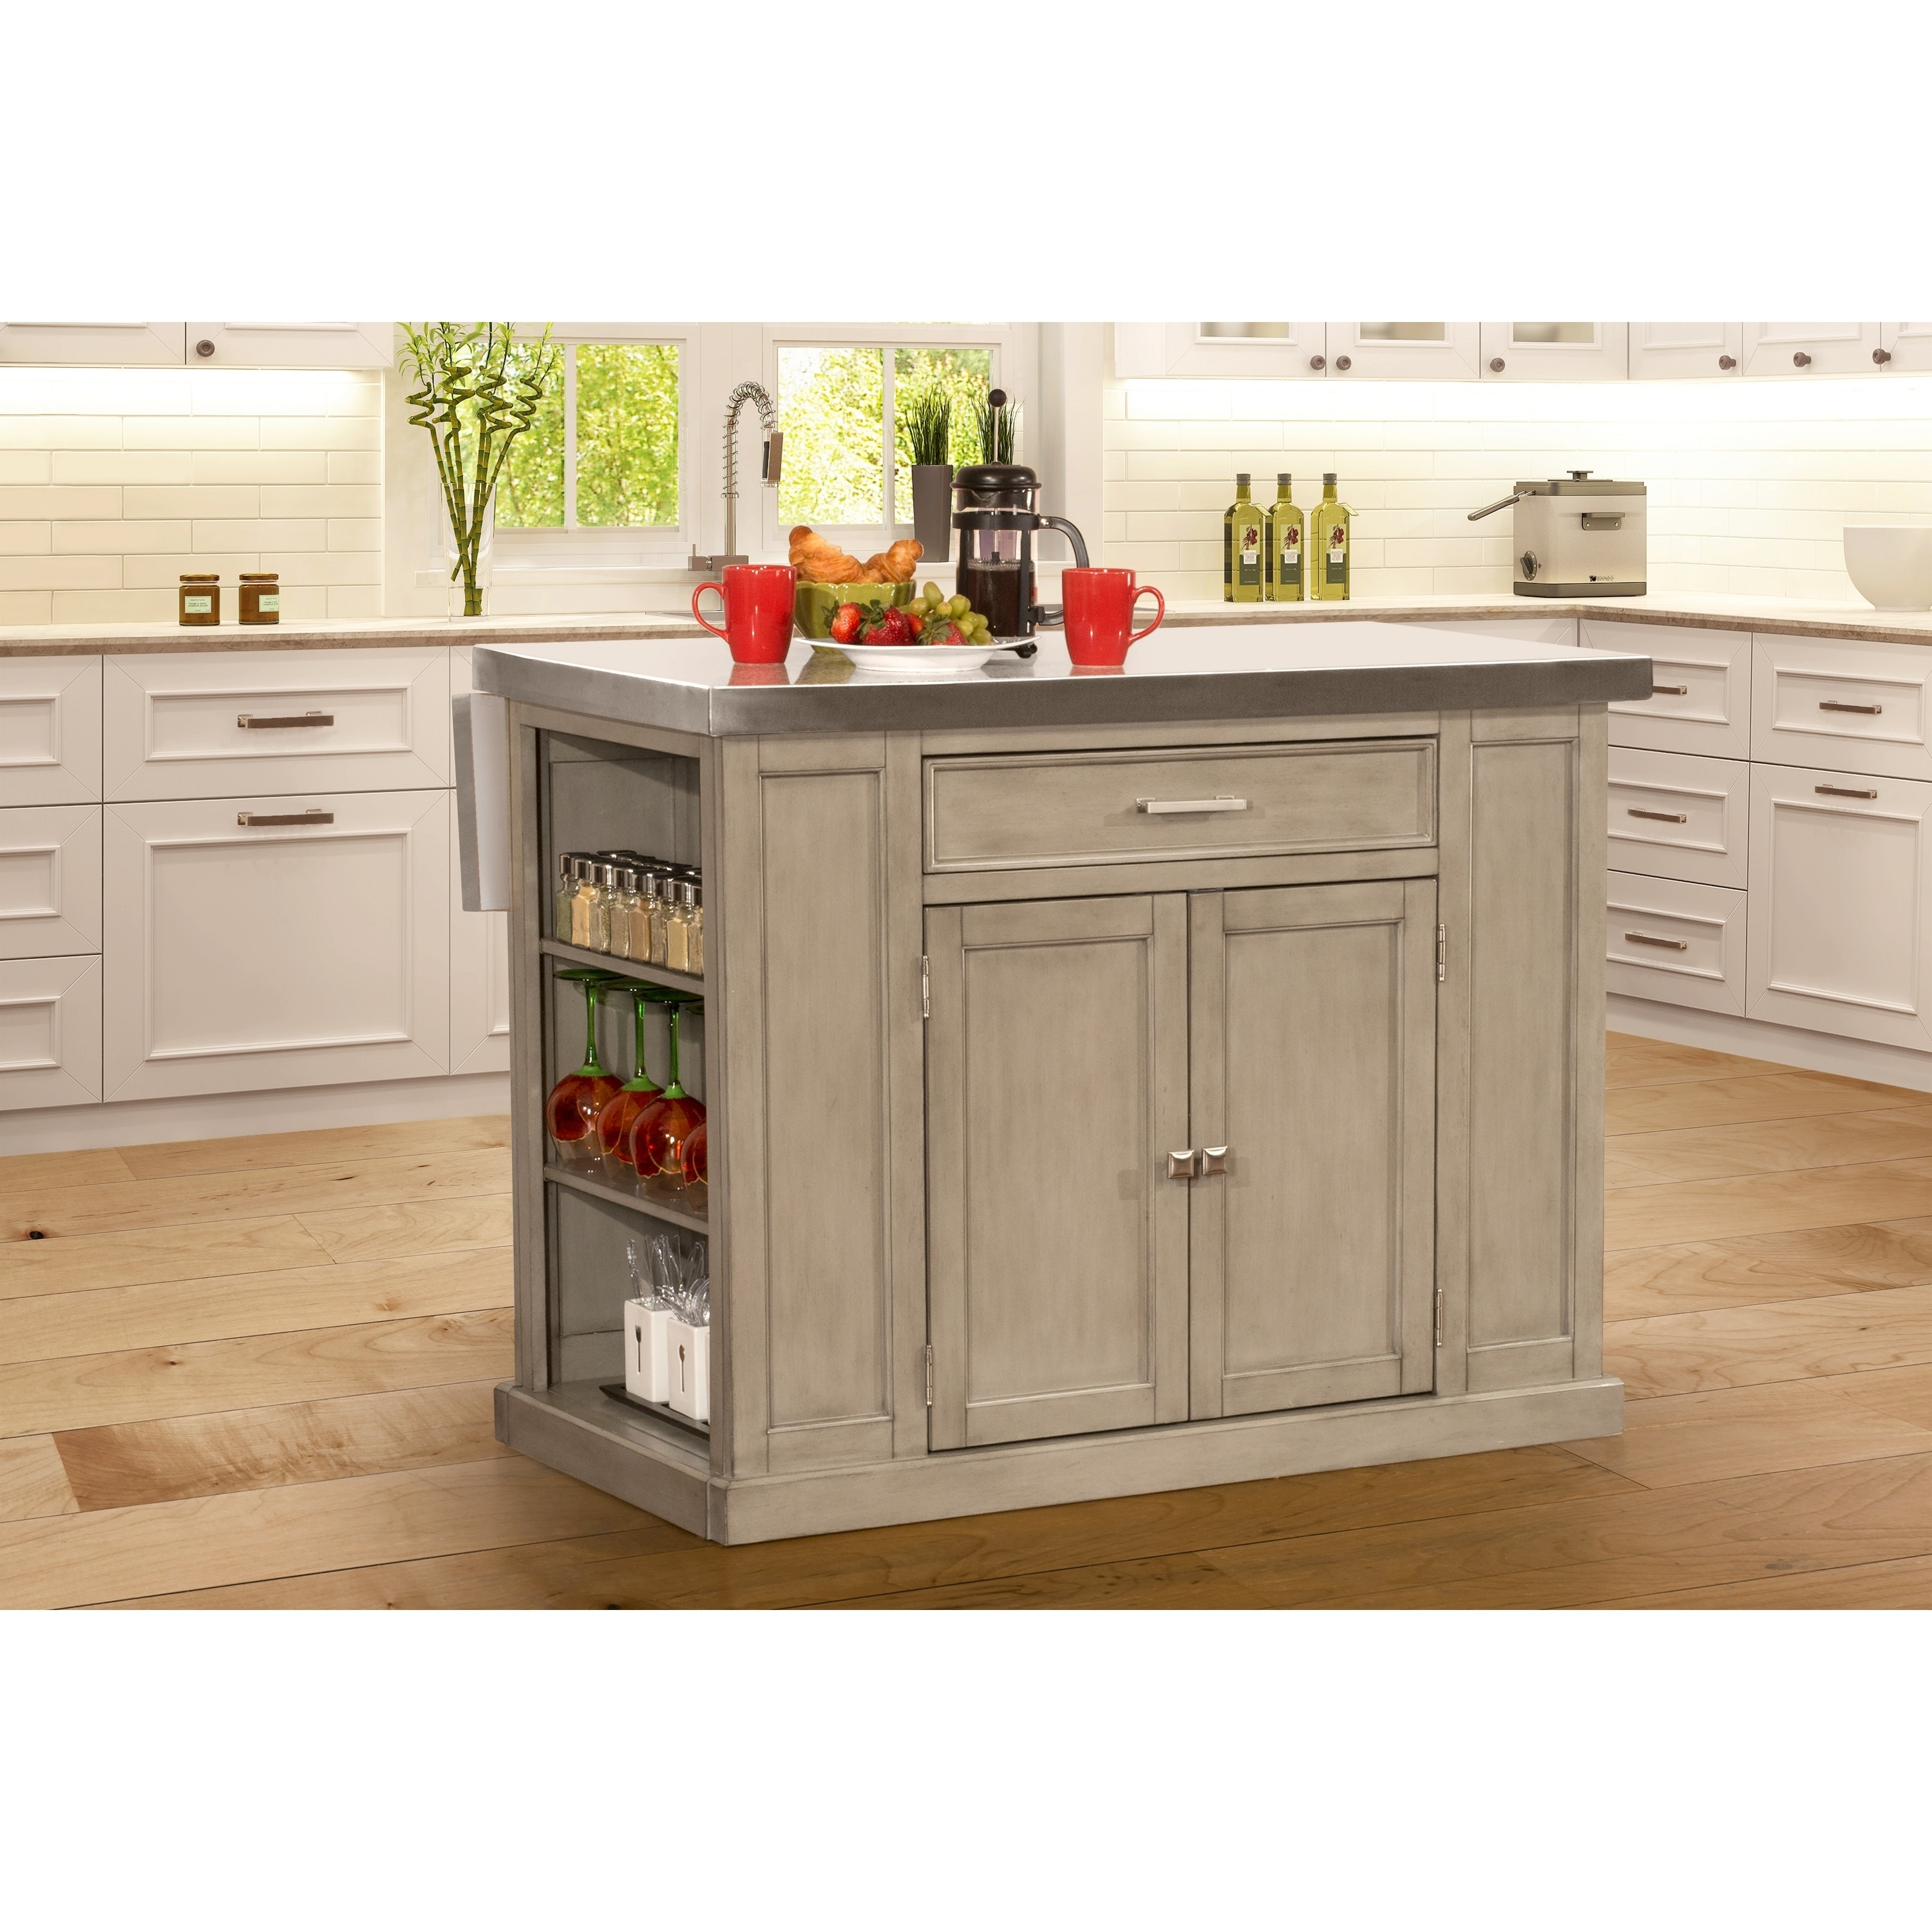 Flemington Kitchen Island In Gray With Stainless Steel Top By Hilale Furniture